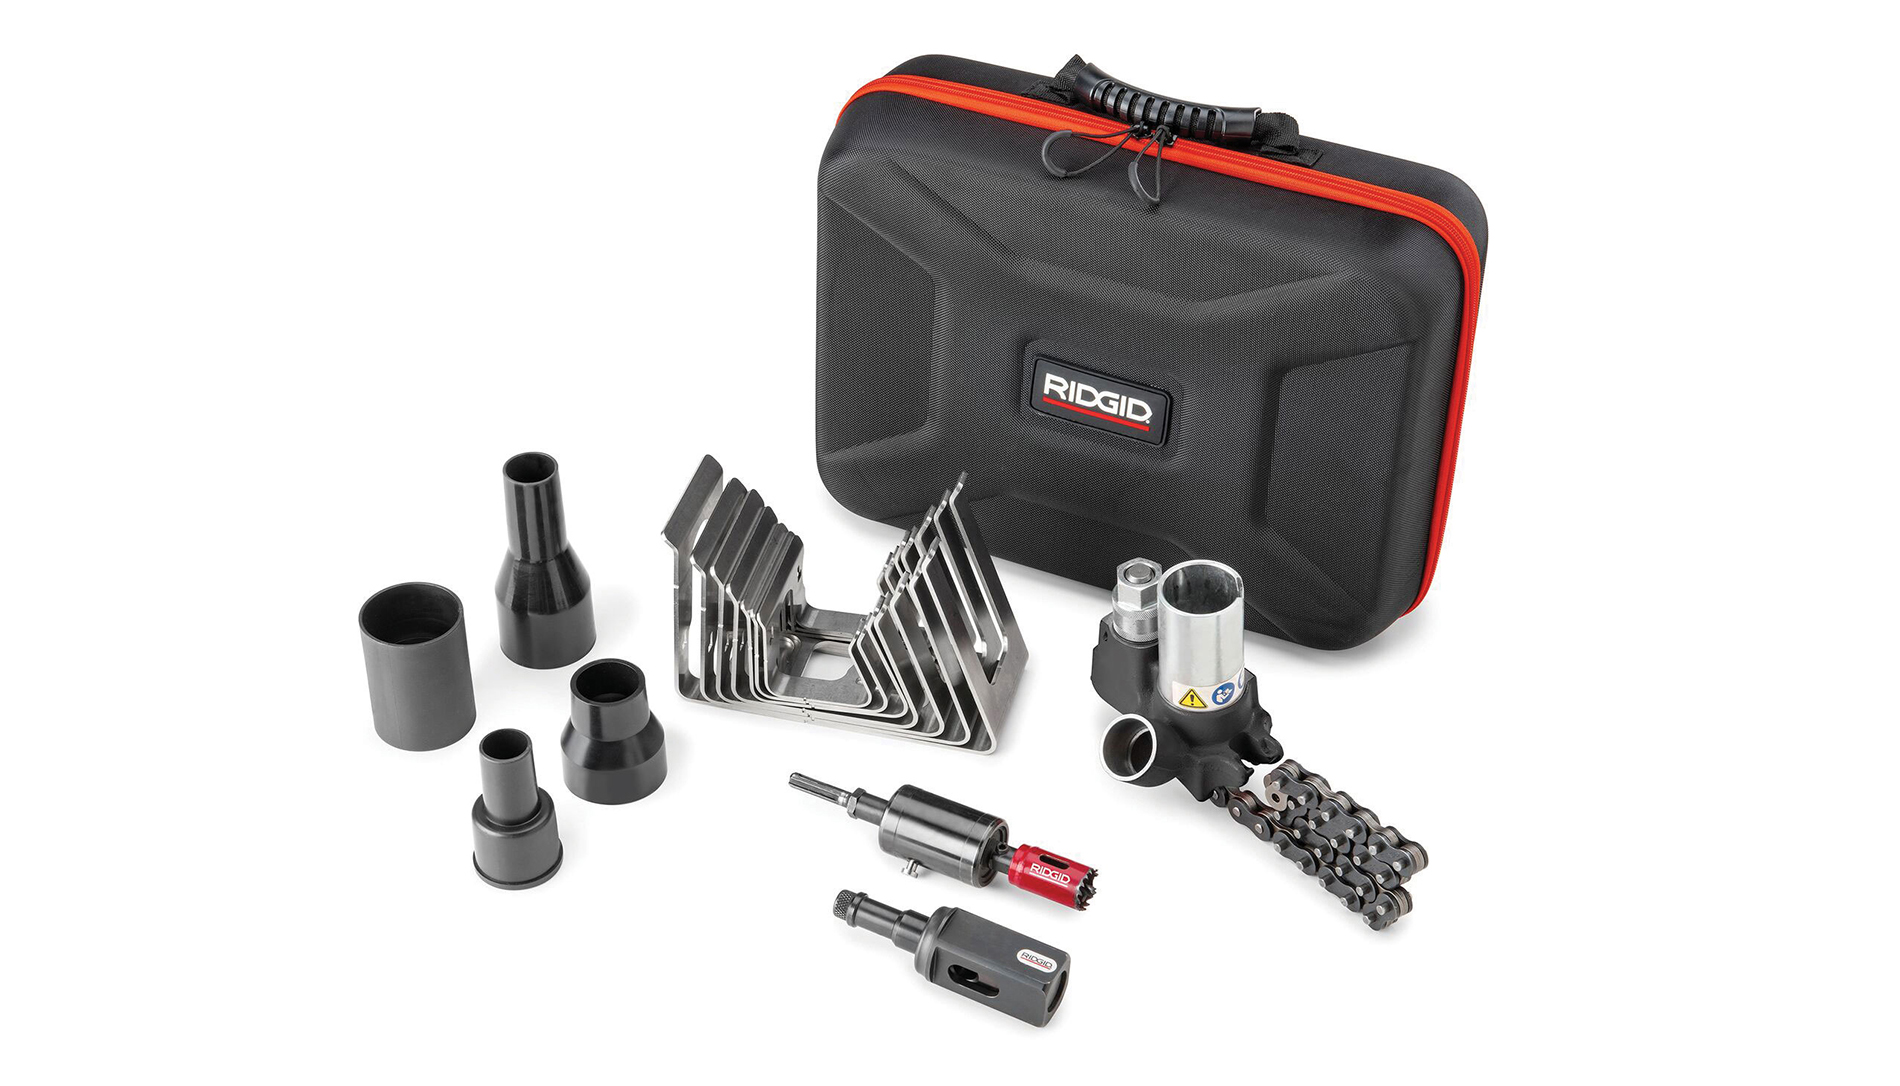 Ridgid's Press-In 3/4-In. Branch Connector Tool Kit